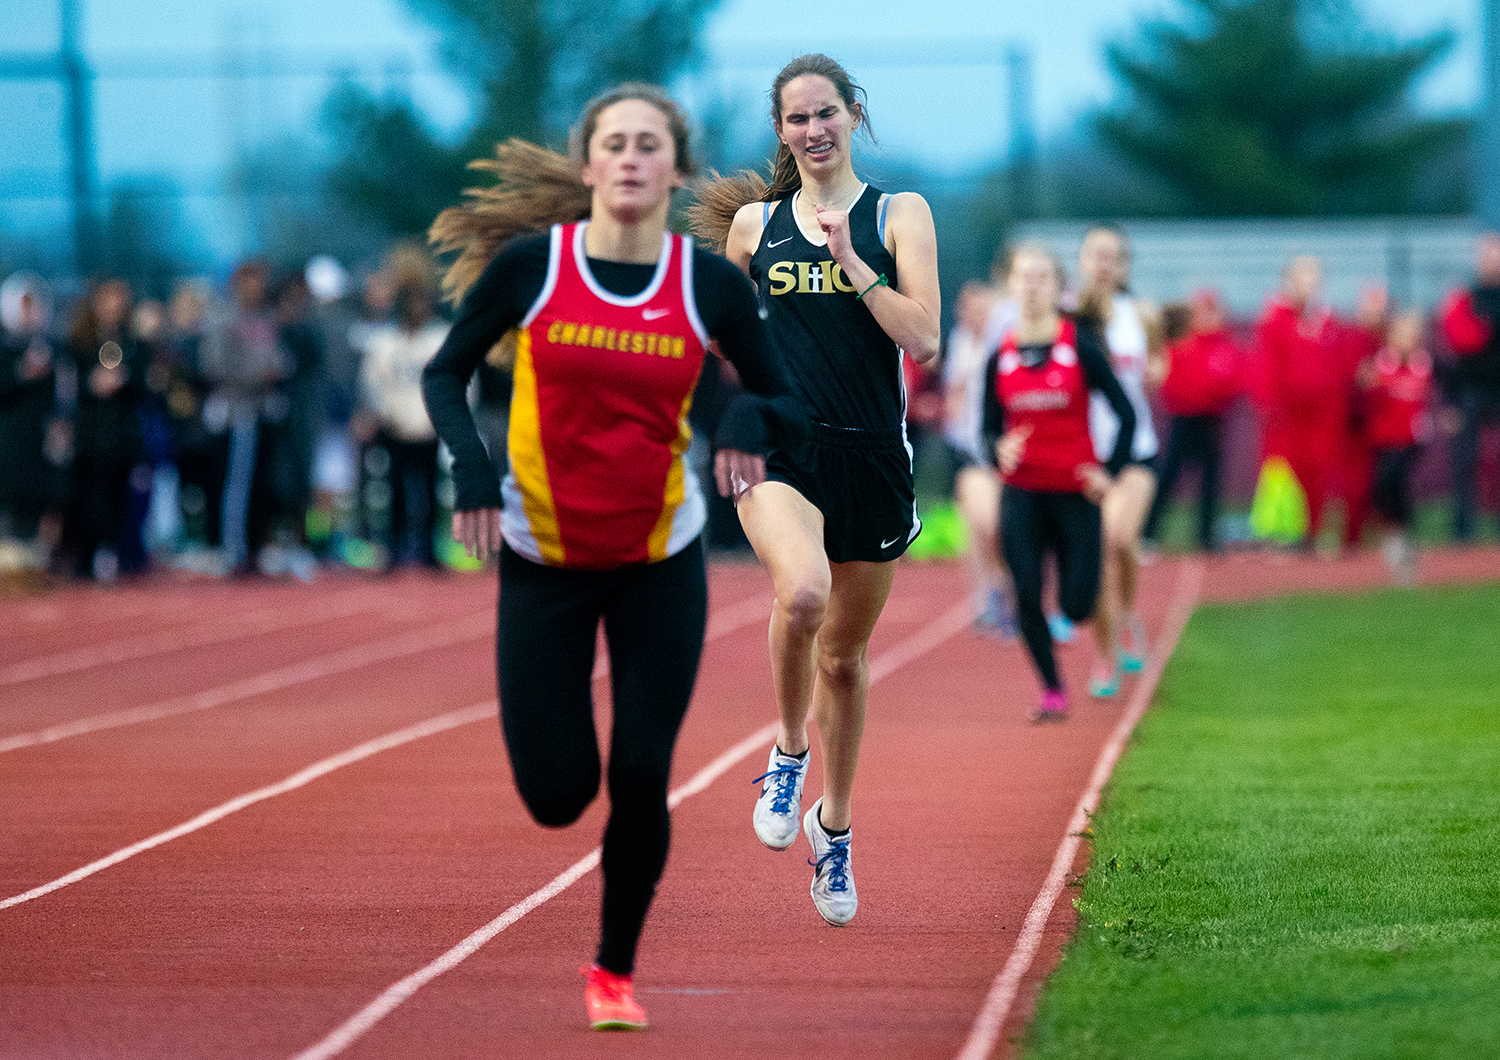 Sacred Heart-Griffin's Mikayla Hady finishes behind Charleston's Megan Garrett in the 800 meter run during the 2019 Titan Co-Ed Invitational, 2019 at Glenwood High School Thursday, April 18, 2019. [Ted Schurter/The State Journal-Register]